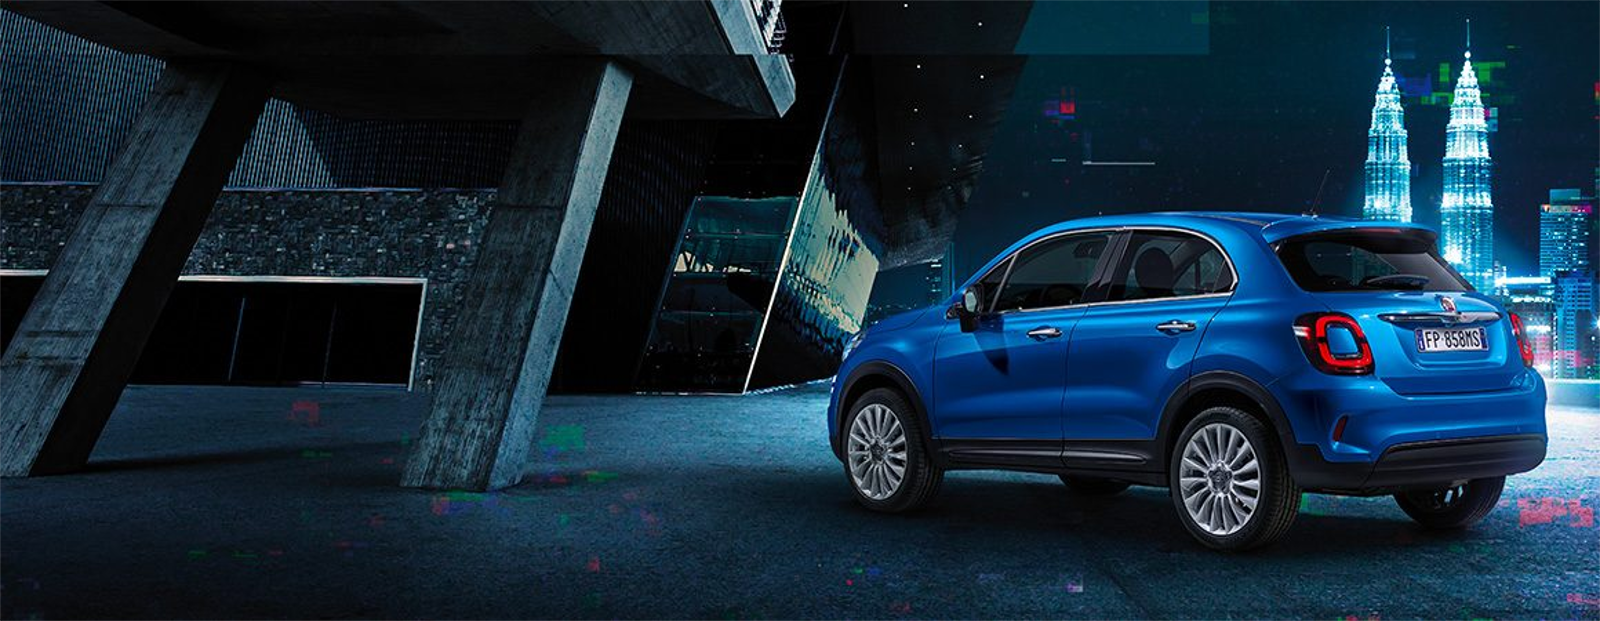 Lateral Fiat 500X